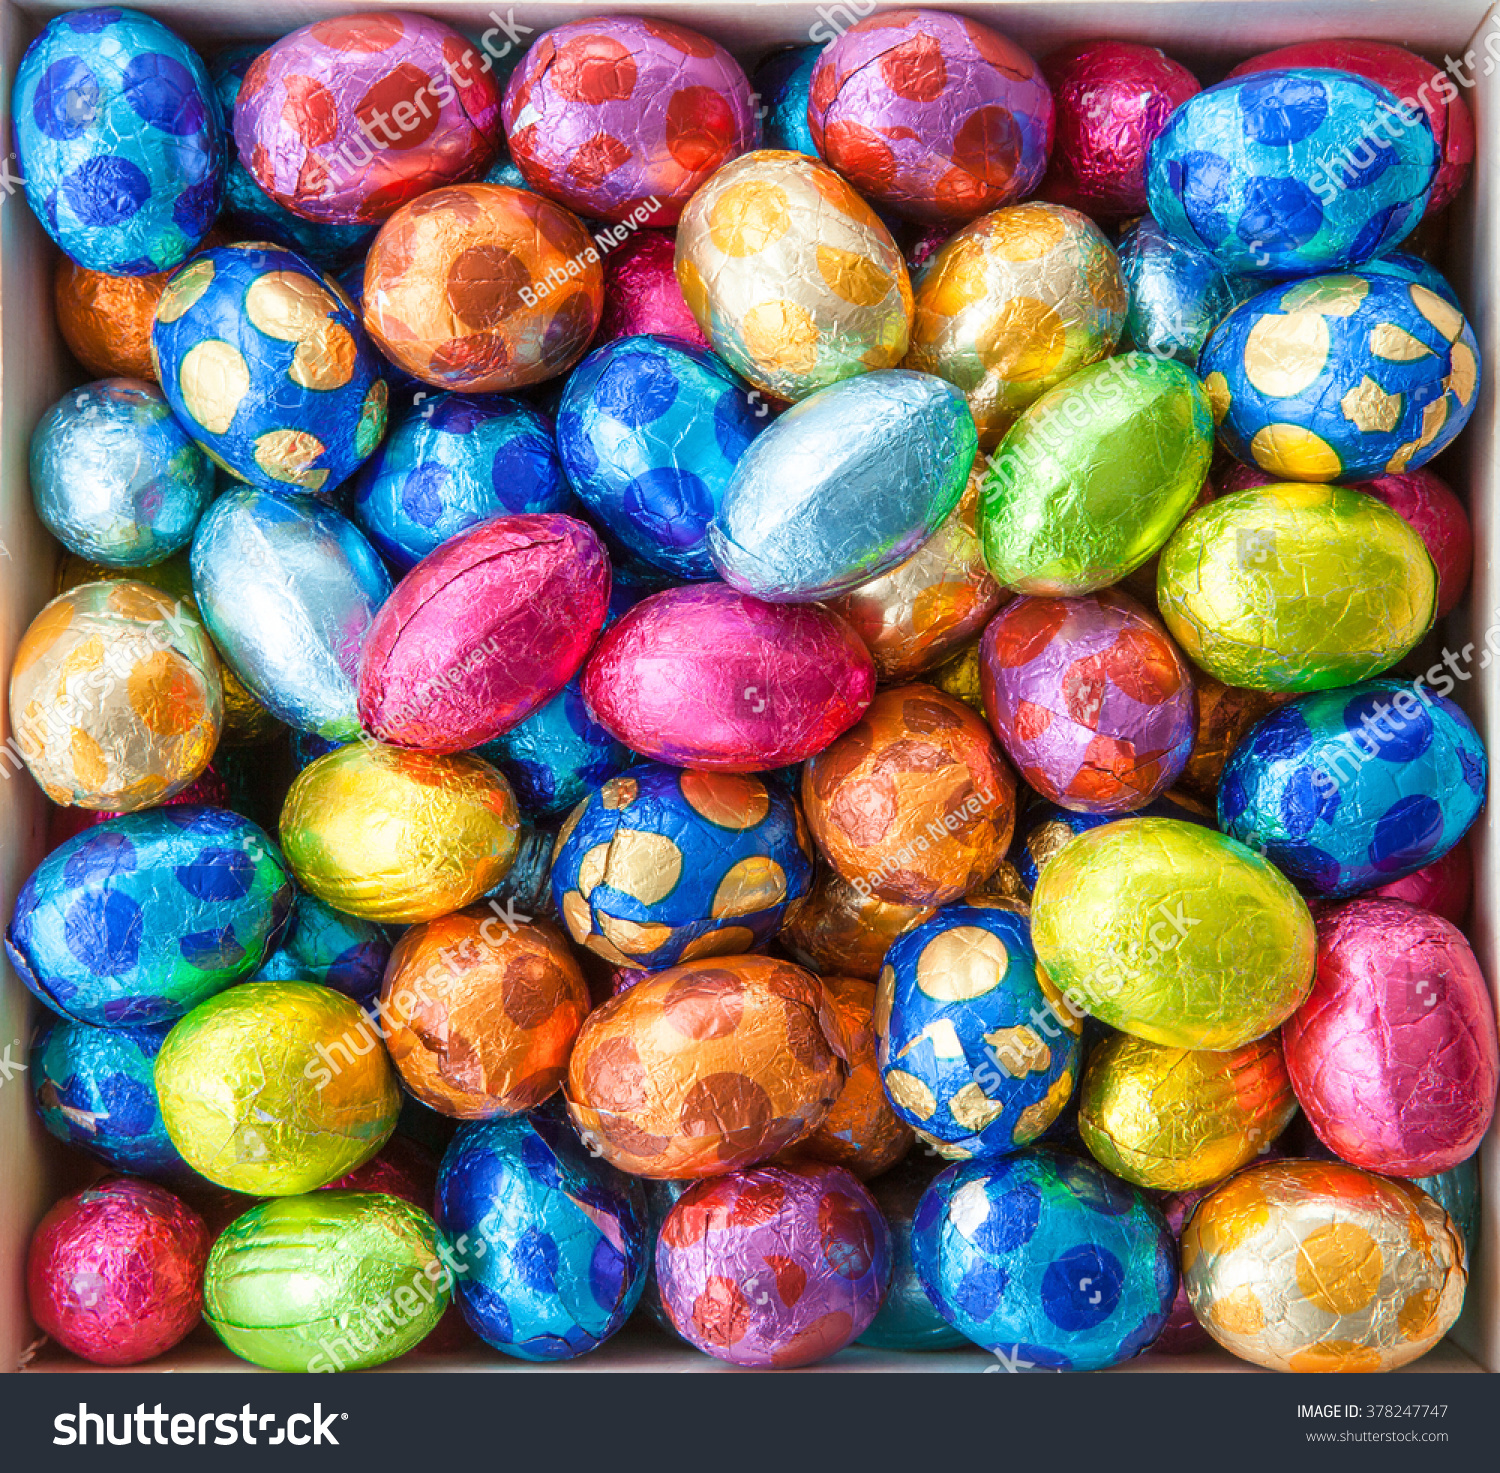 Chocolate Eggs In Colorful Foil For Easter Stock Photo